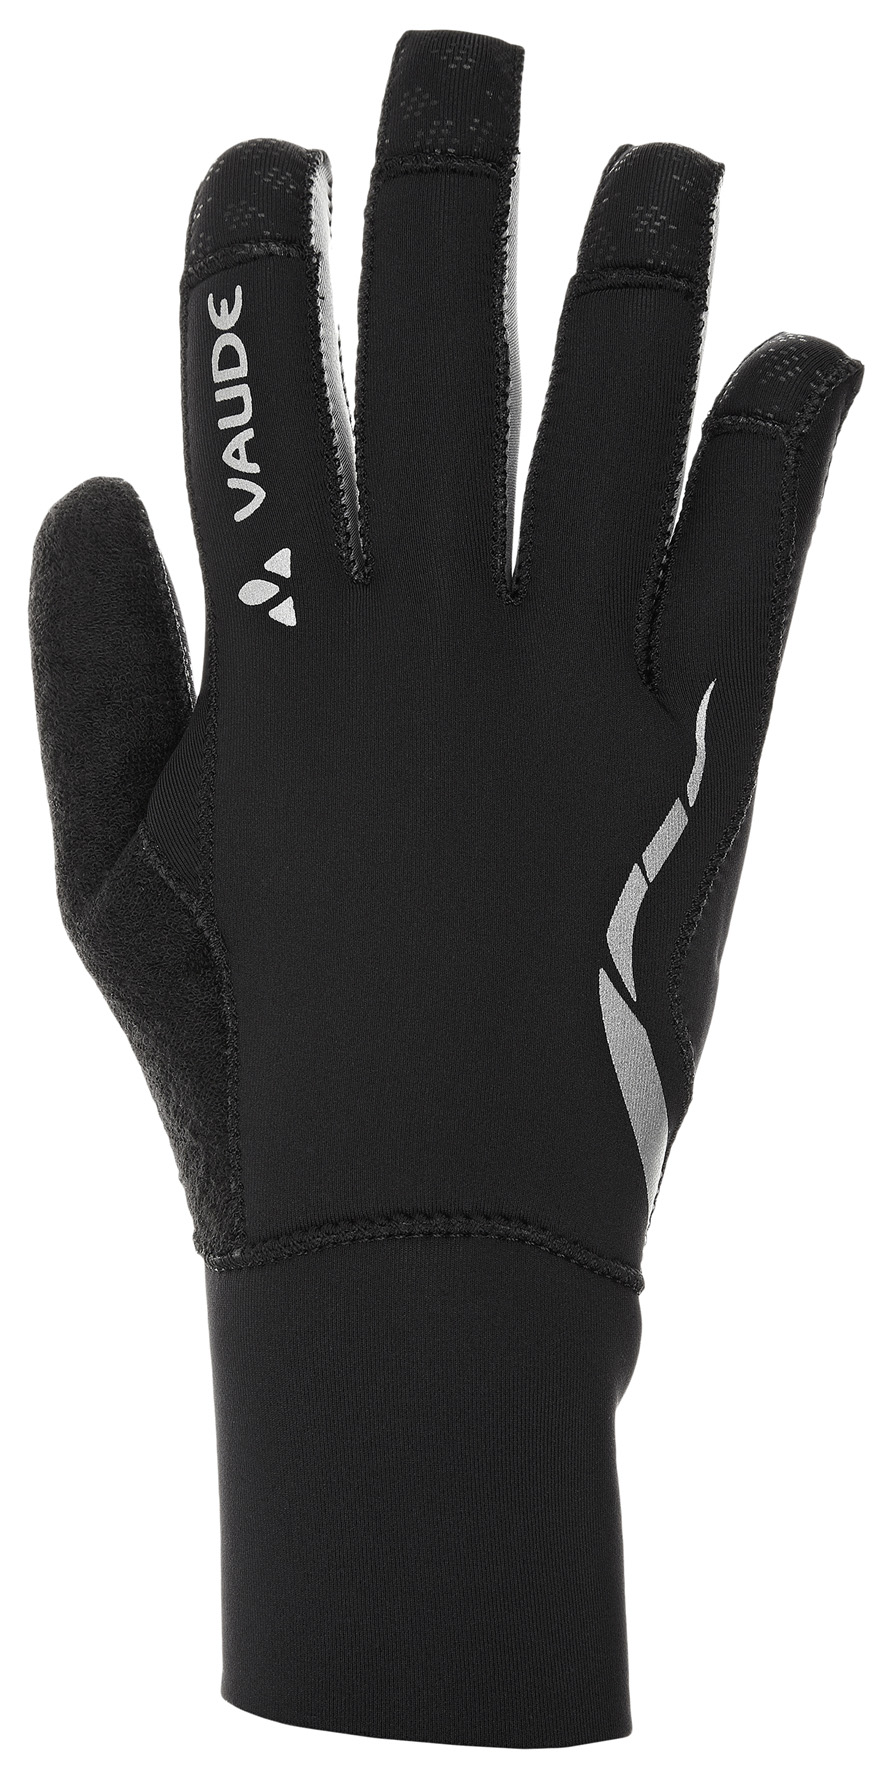 VAUDE Chronos Gloves black Größe 5 - schneider-sports